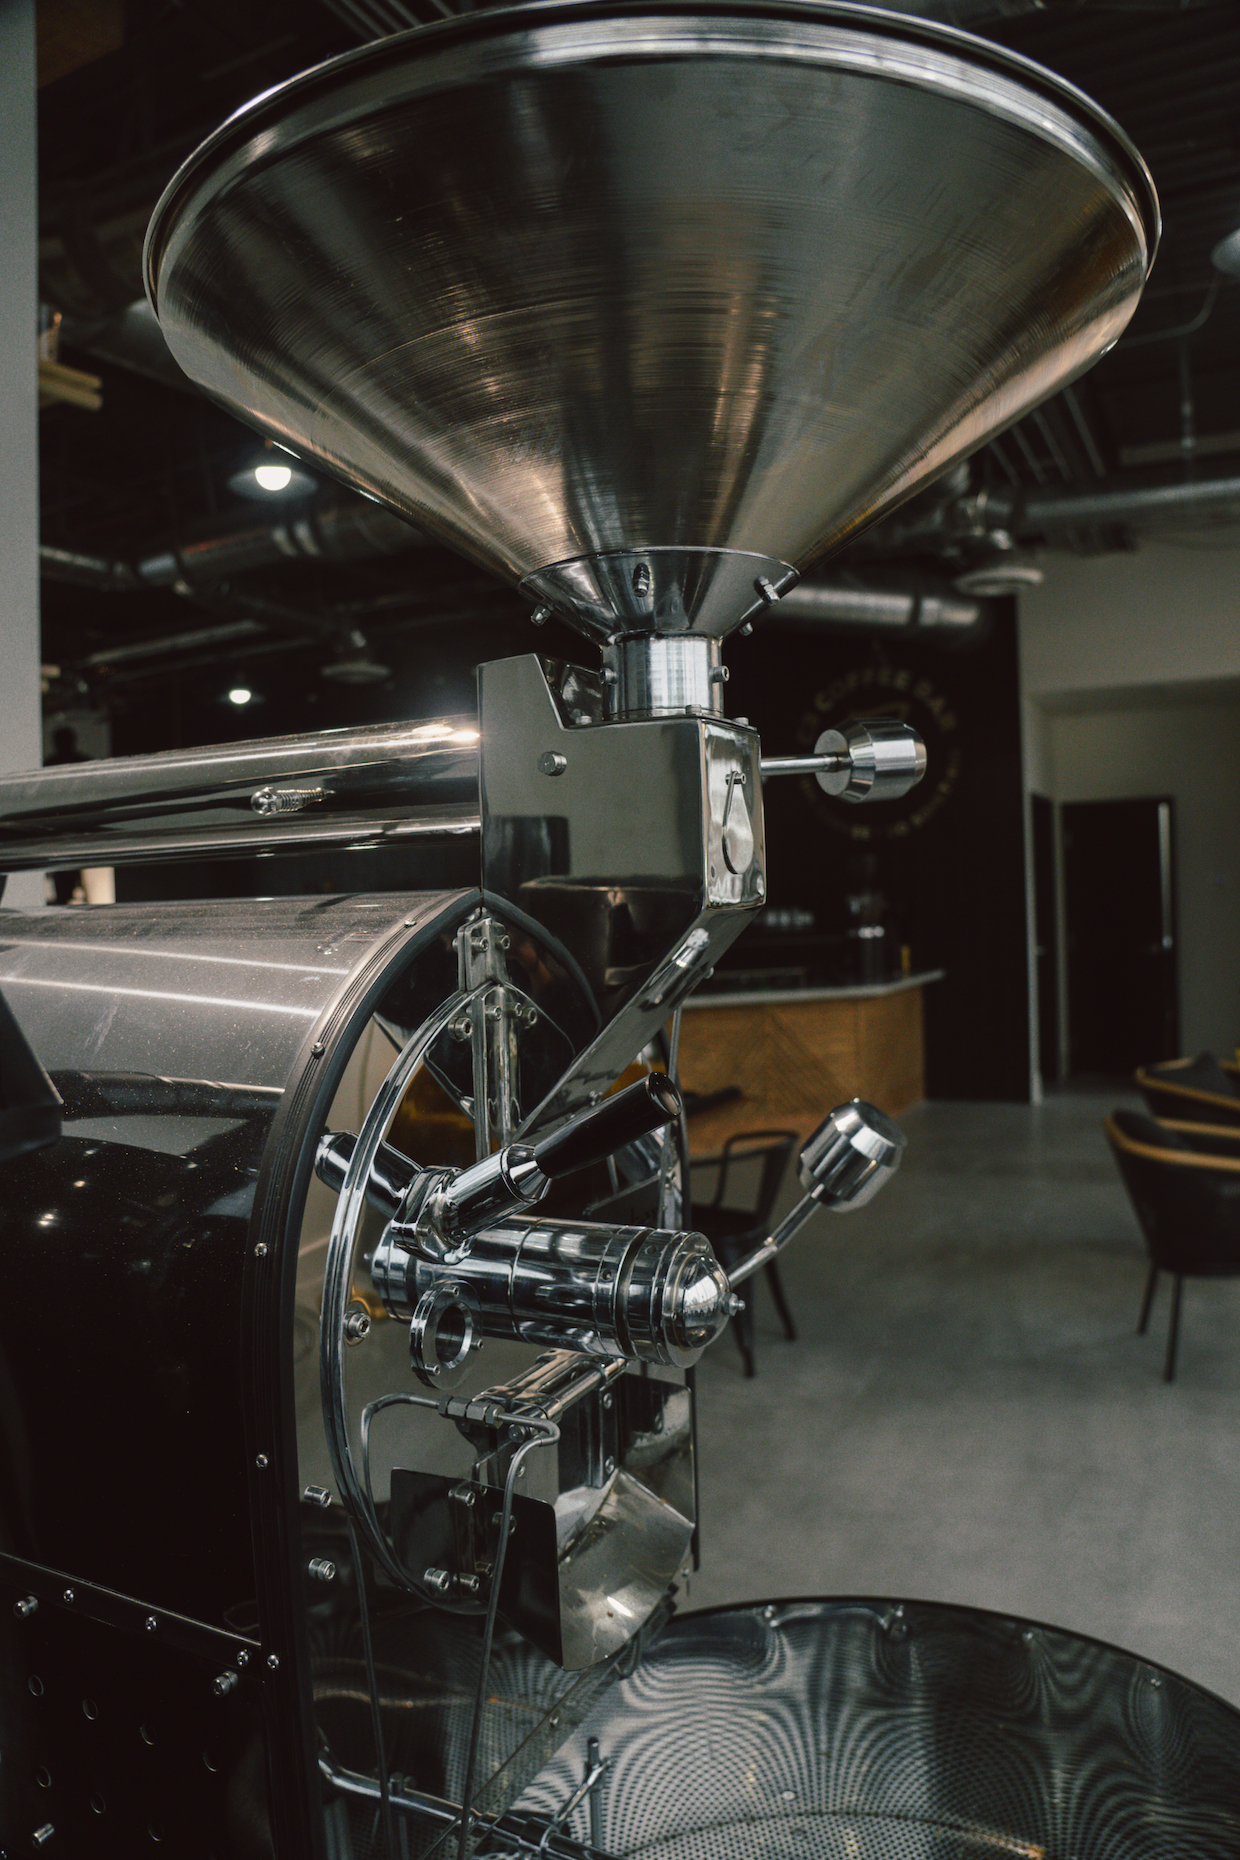 The new C3 Ambex YM-15 roaster